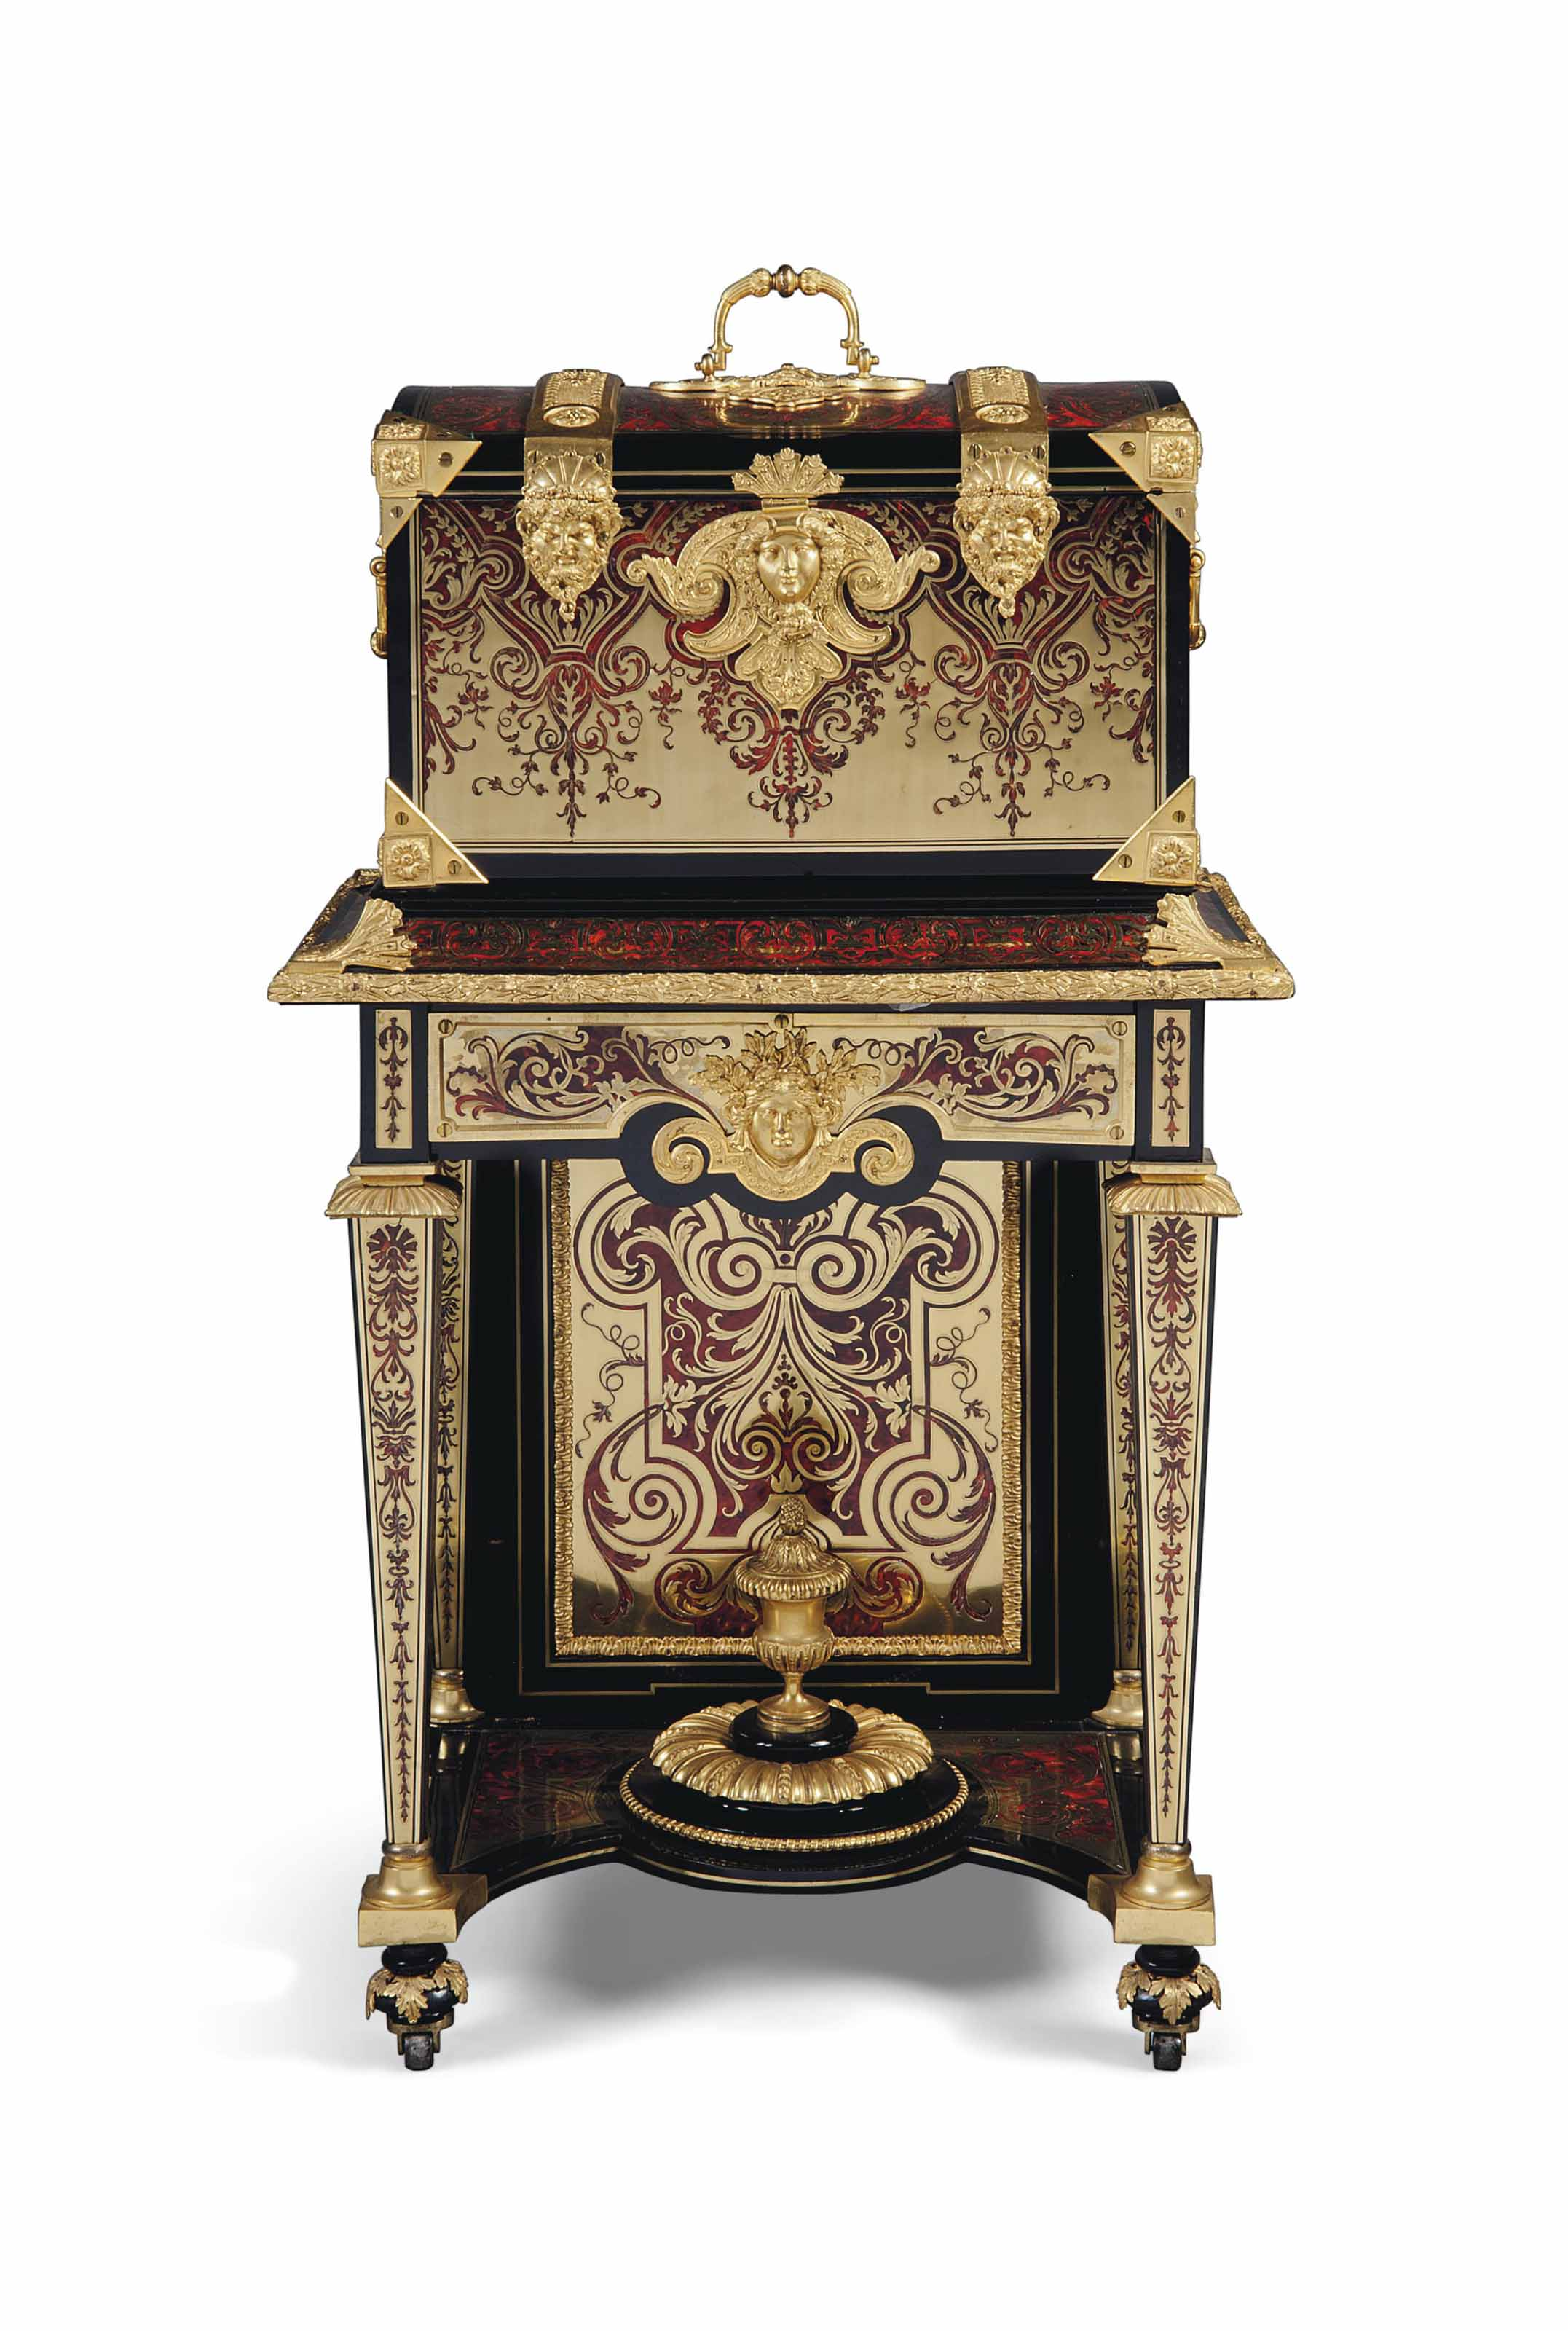 A REGENCY ORMOLU-MOUNTED, TORTOISESHELL AND BRASS-INLAID 'BOULLE' MARQUETRY MARRIAGE COFFER